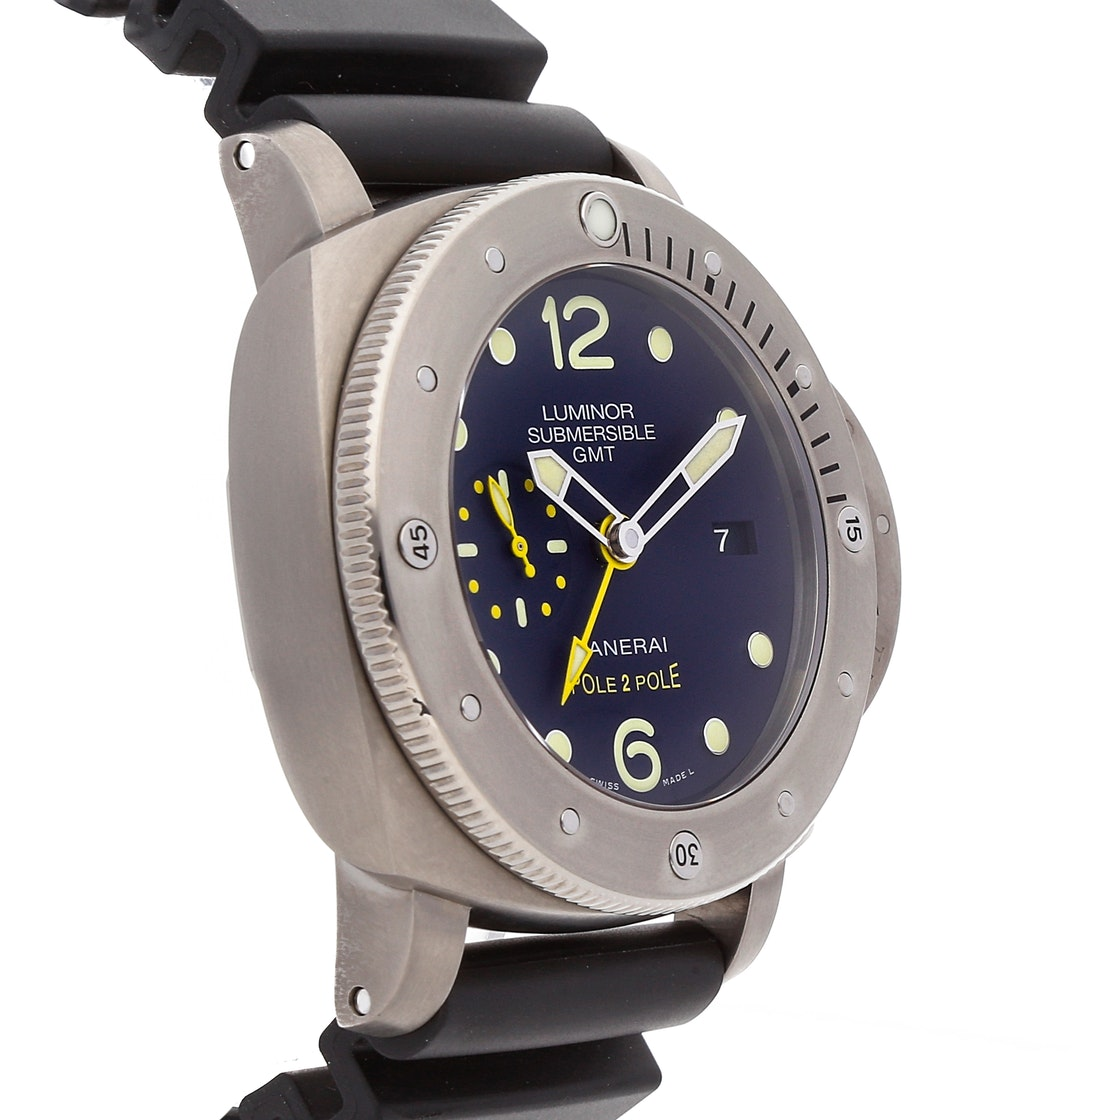 Panerai Luminor Submersible 1950 3-Days GMT Titanio PAM 719